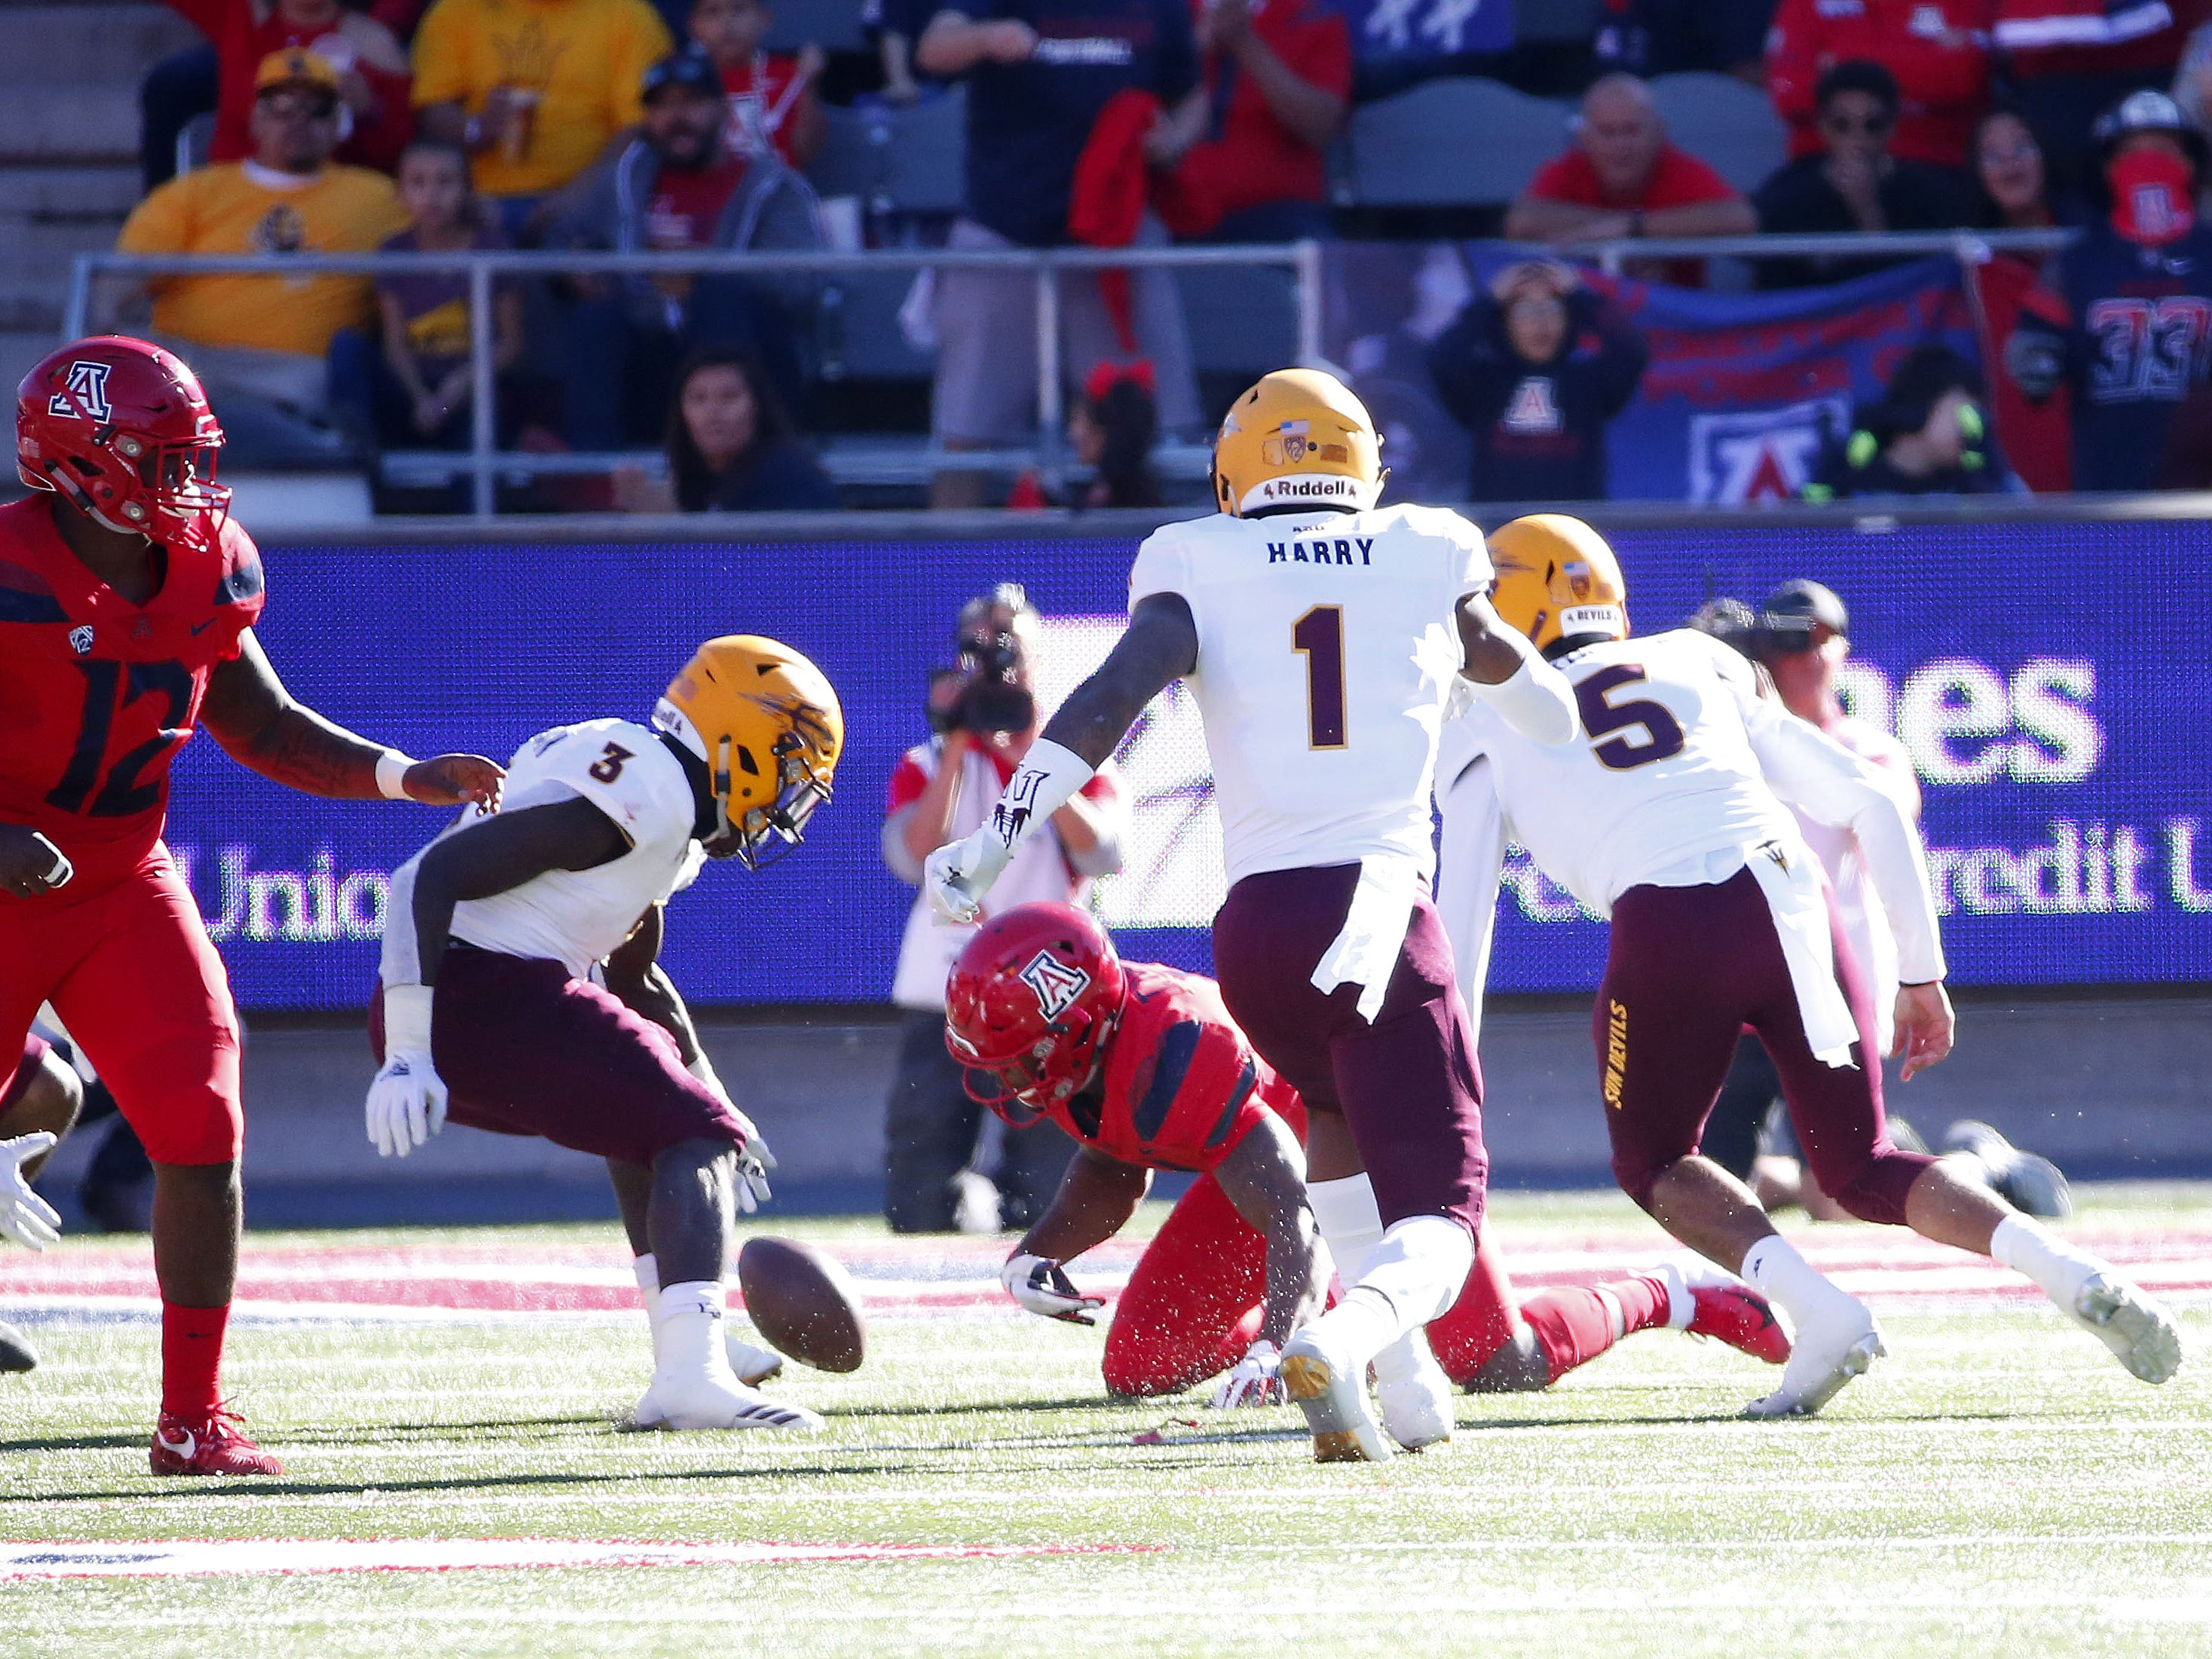 Arizona State Sun Devils running back Eno Benjamin (3) fumbles the ball during the Territorial Cup football game against the Arizona Wildcats at Arizona Stadium in Tucson on November 24.